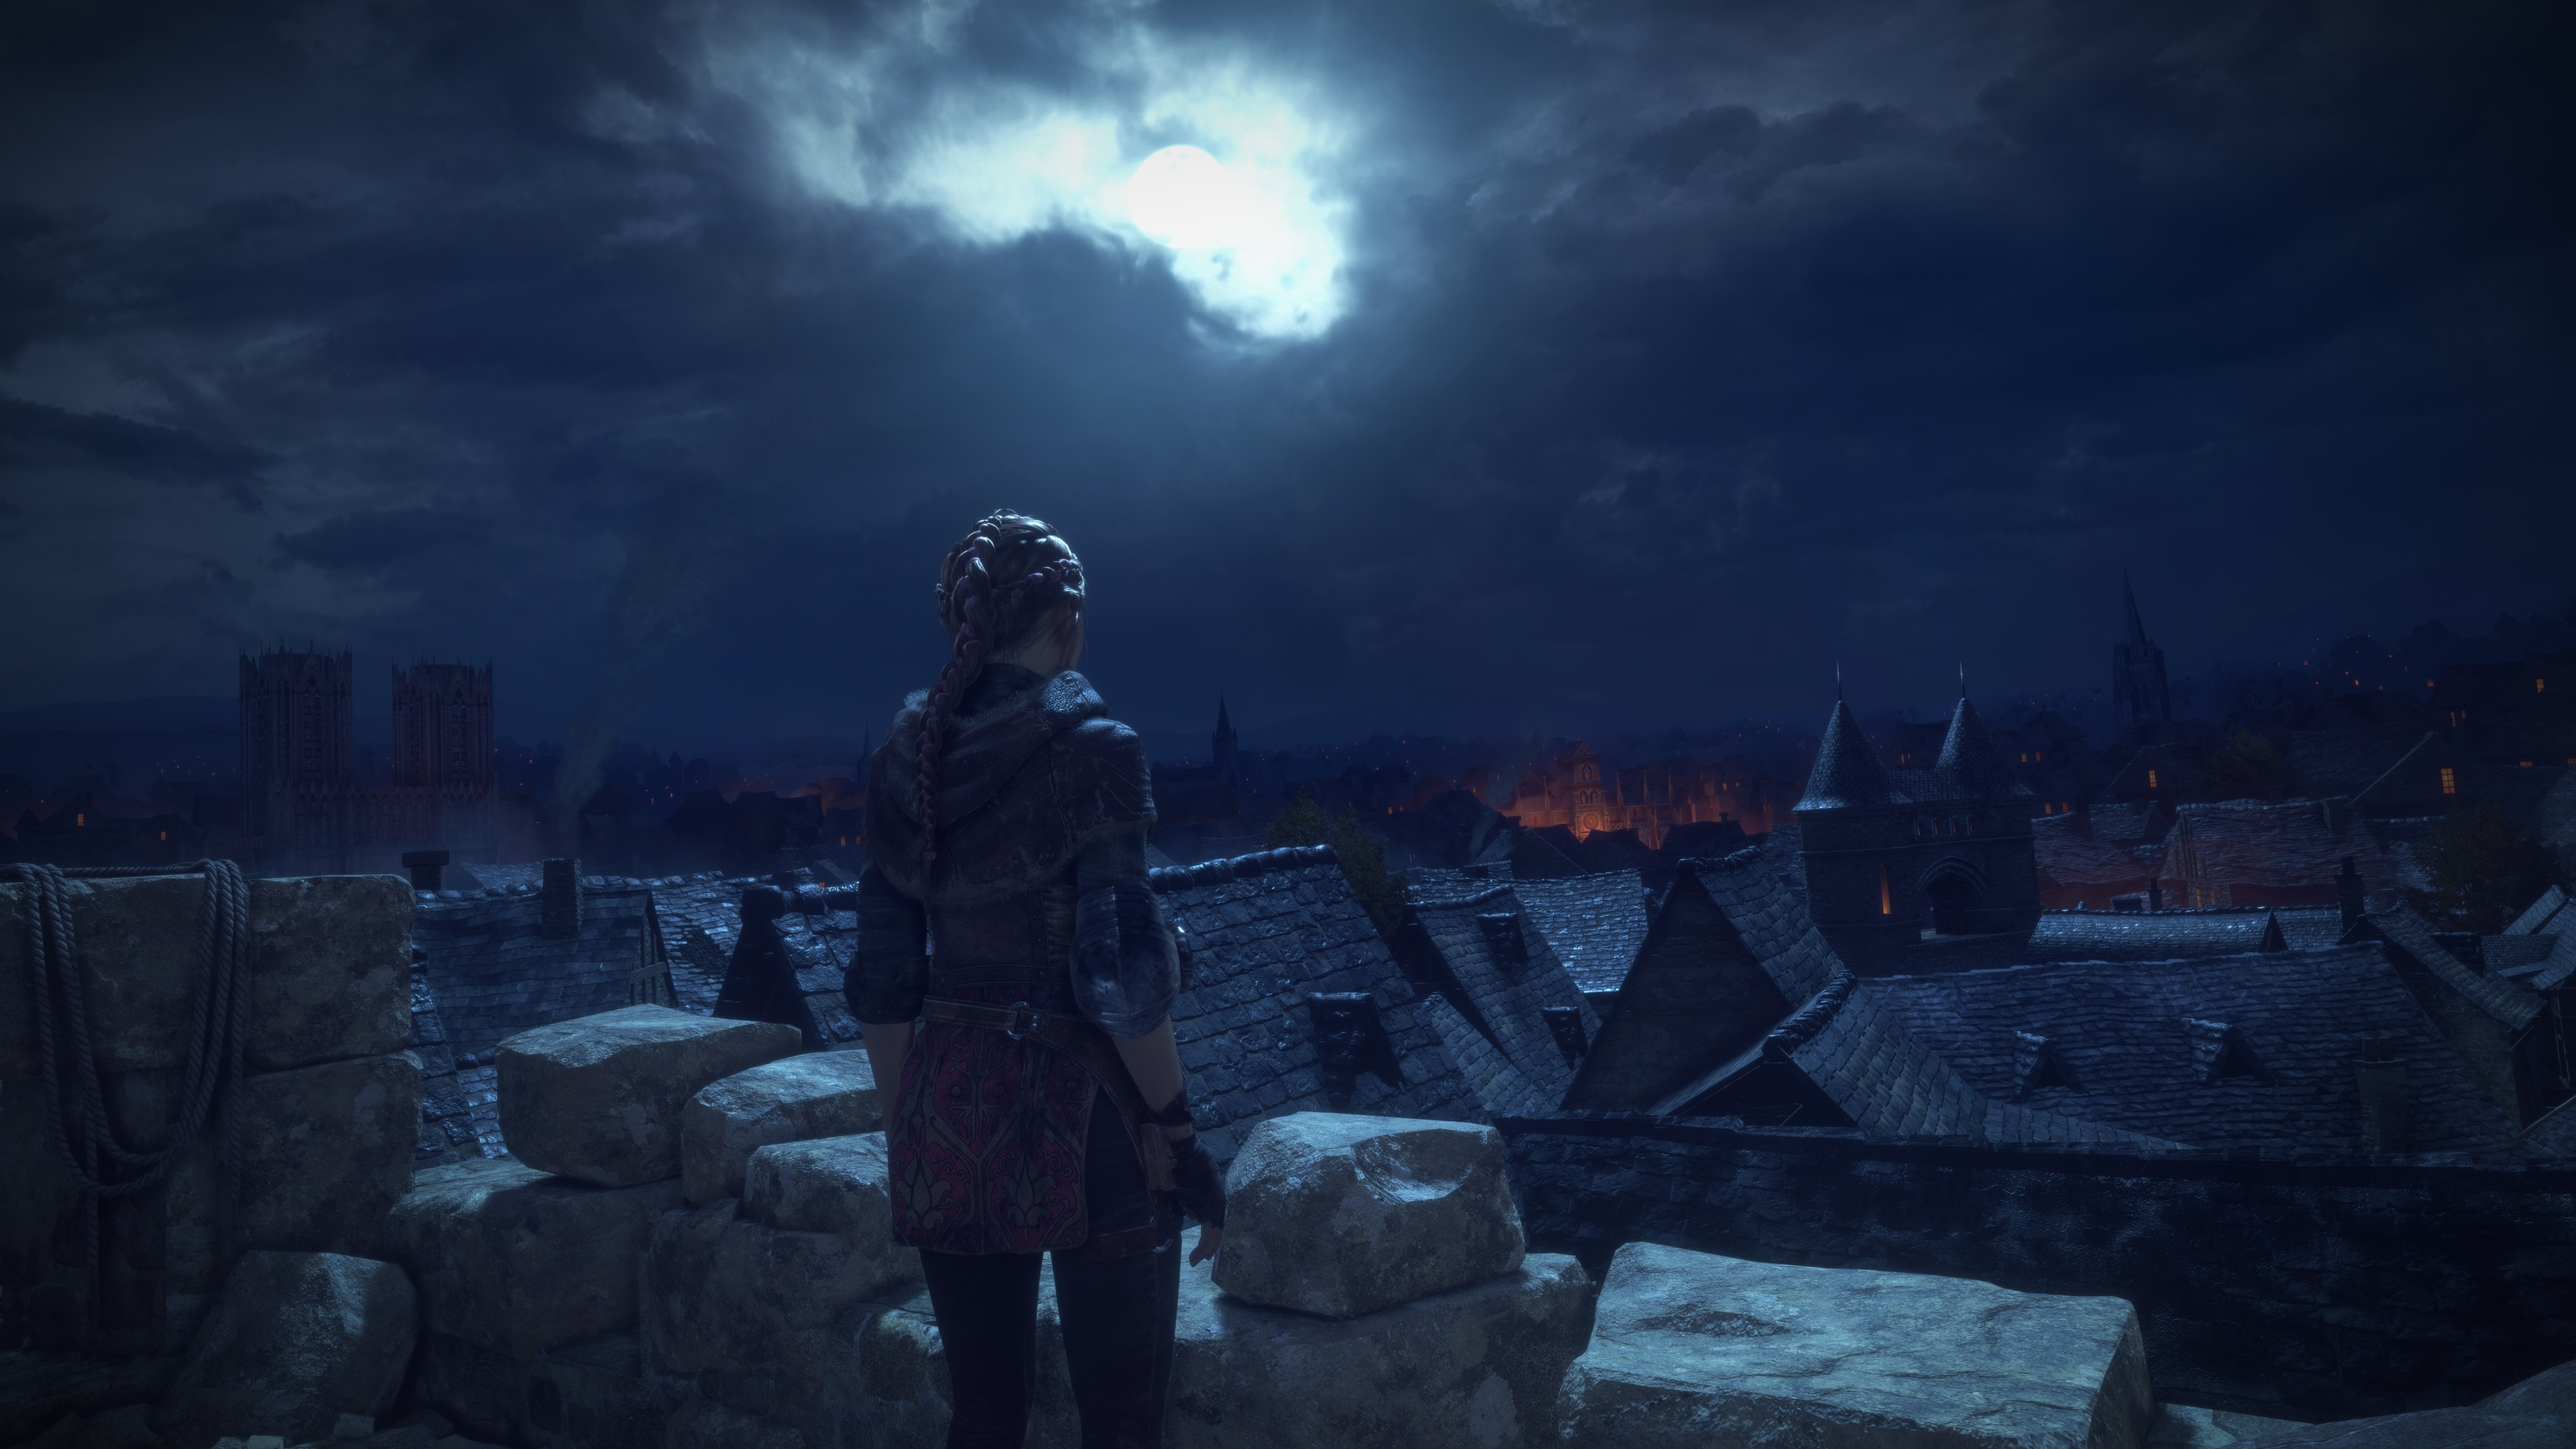 a plague tale innocence 2019 1568056867 - A Plague Tale Innocence 2019 - hd-wallpapers, games wallpapers, a plague tale innocence wallpapers, 5k wallpapers, 4k-wallpapers, 2019 games wallpapers